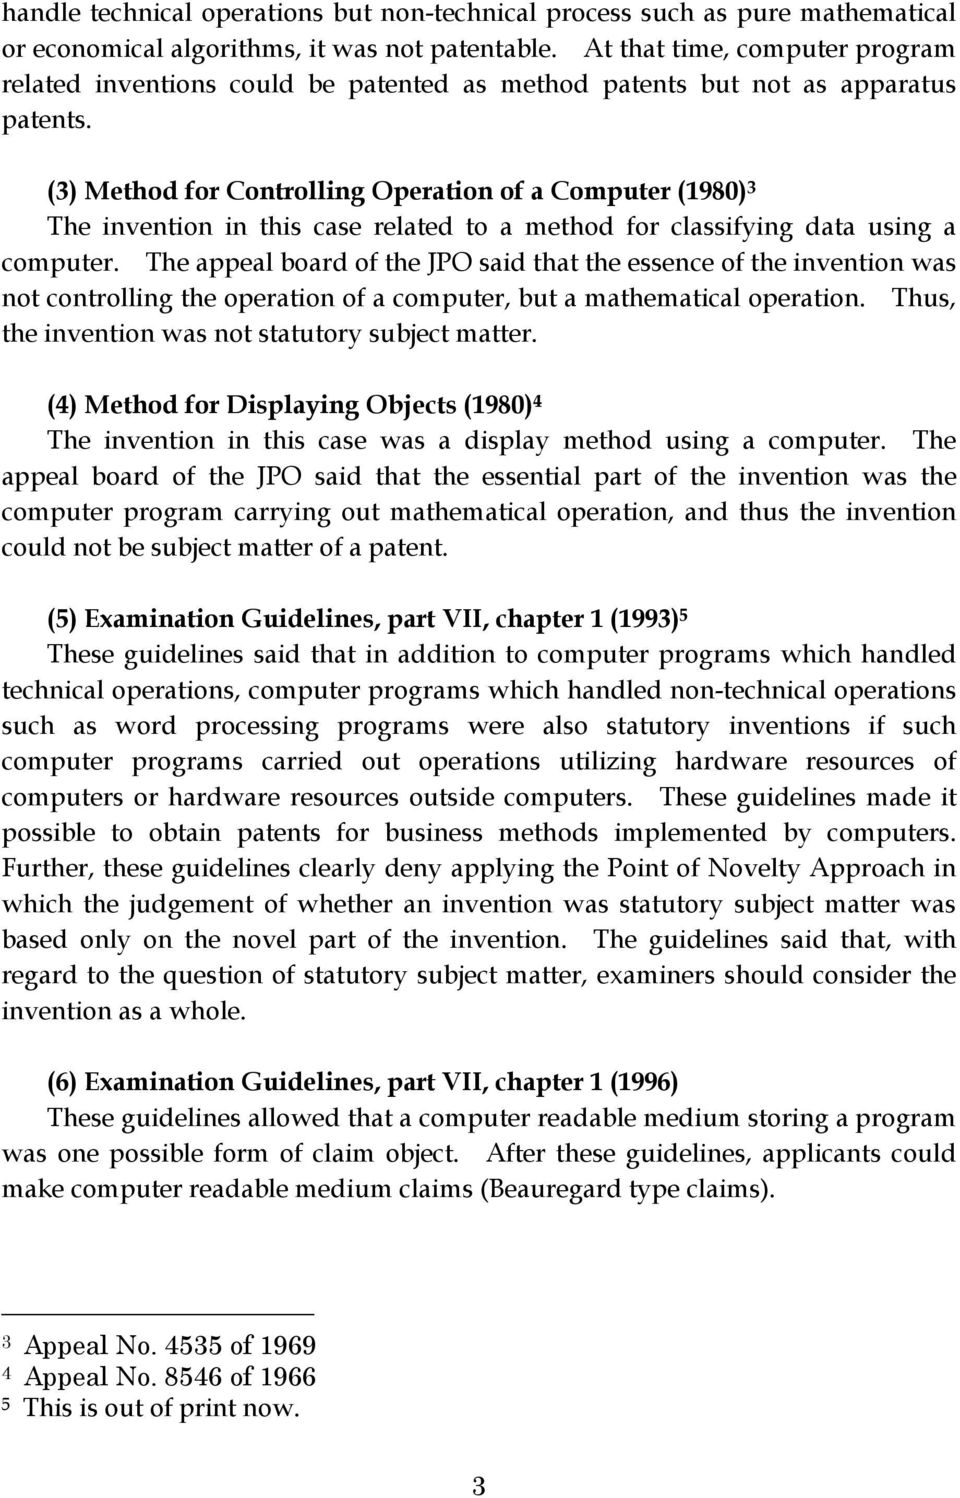 (3) Method for Controlling Operation of a Computer (1980) 3 The invention in this case related to a method for classifying data using a computer.